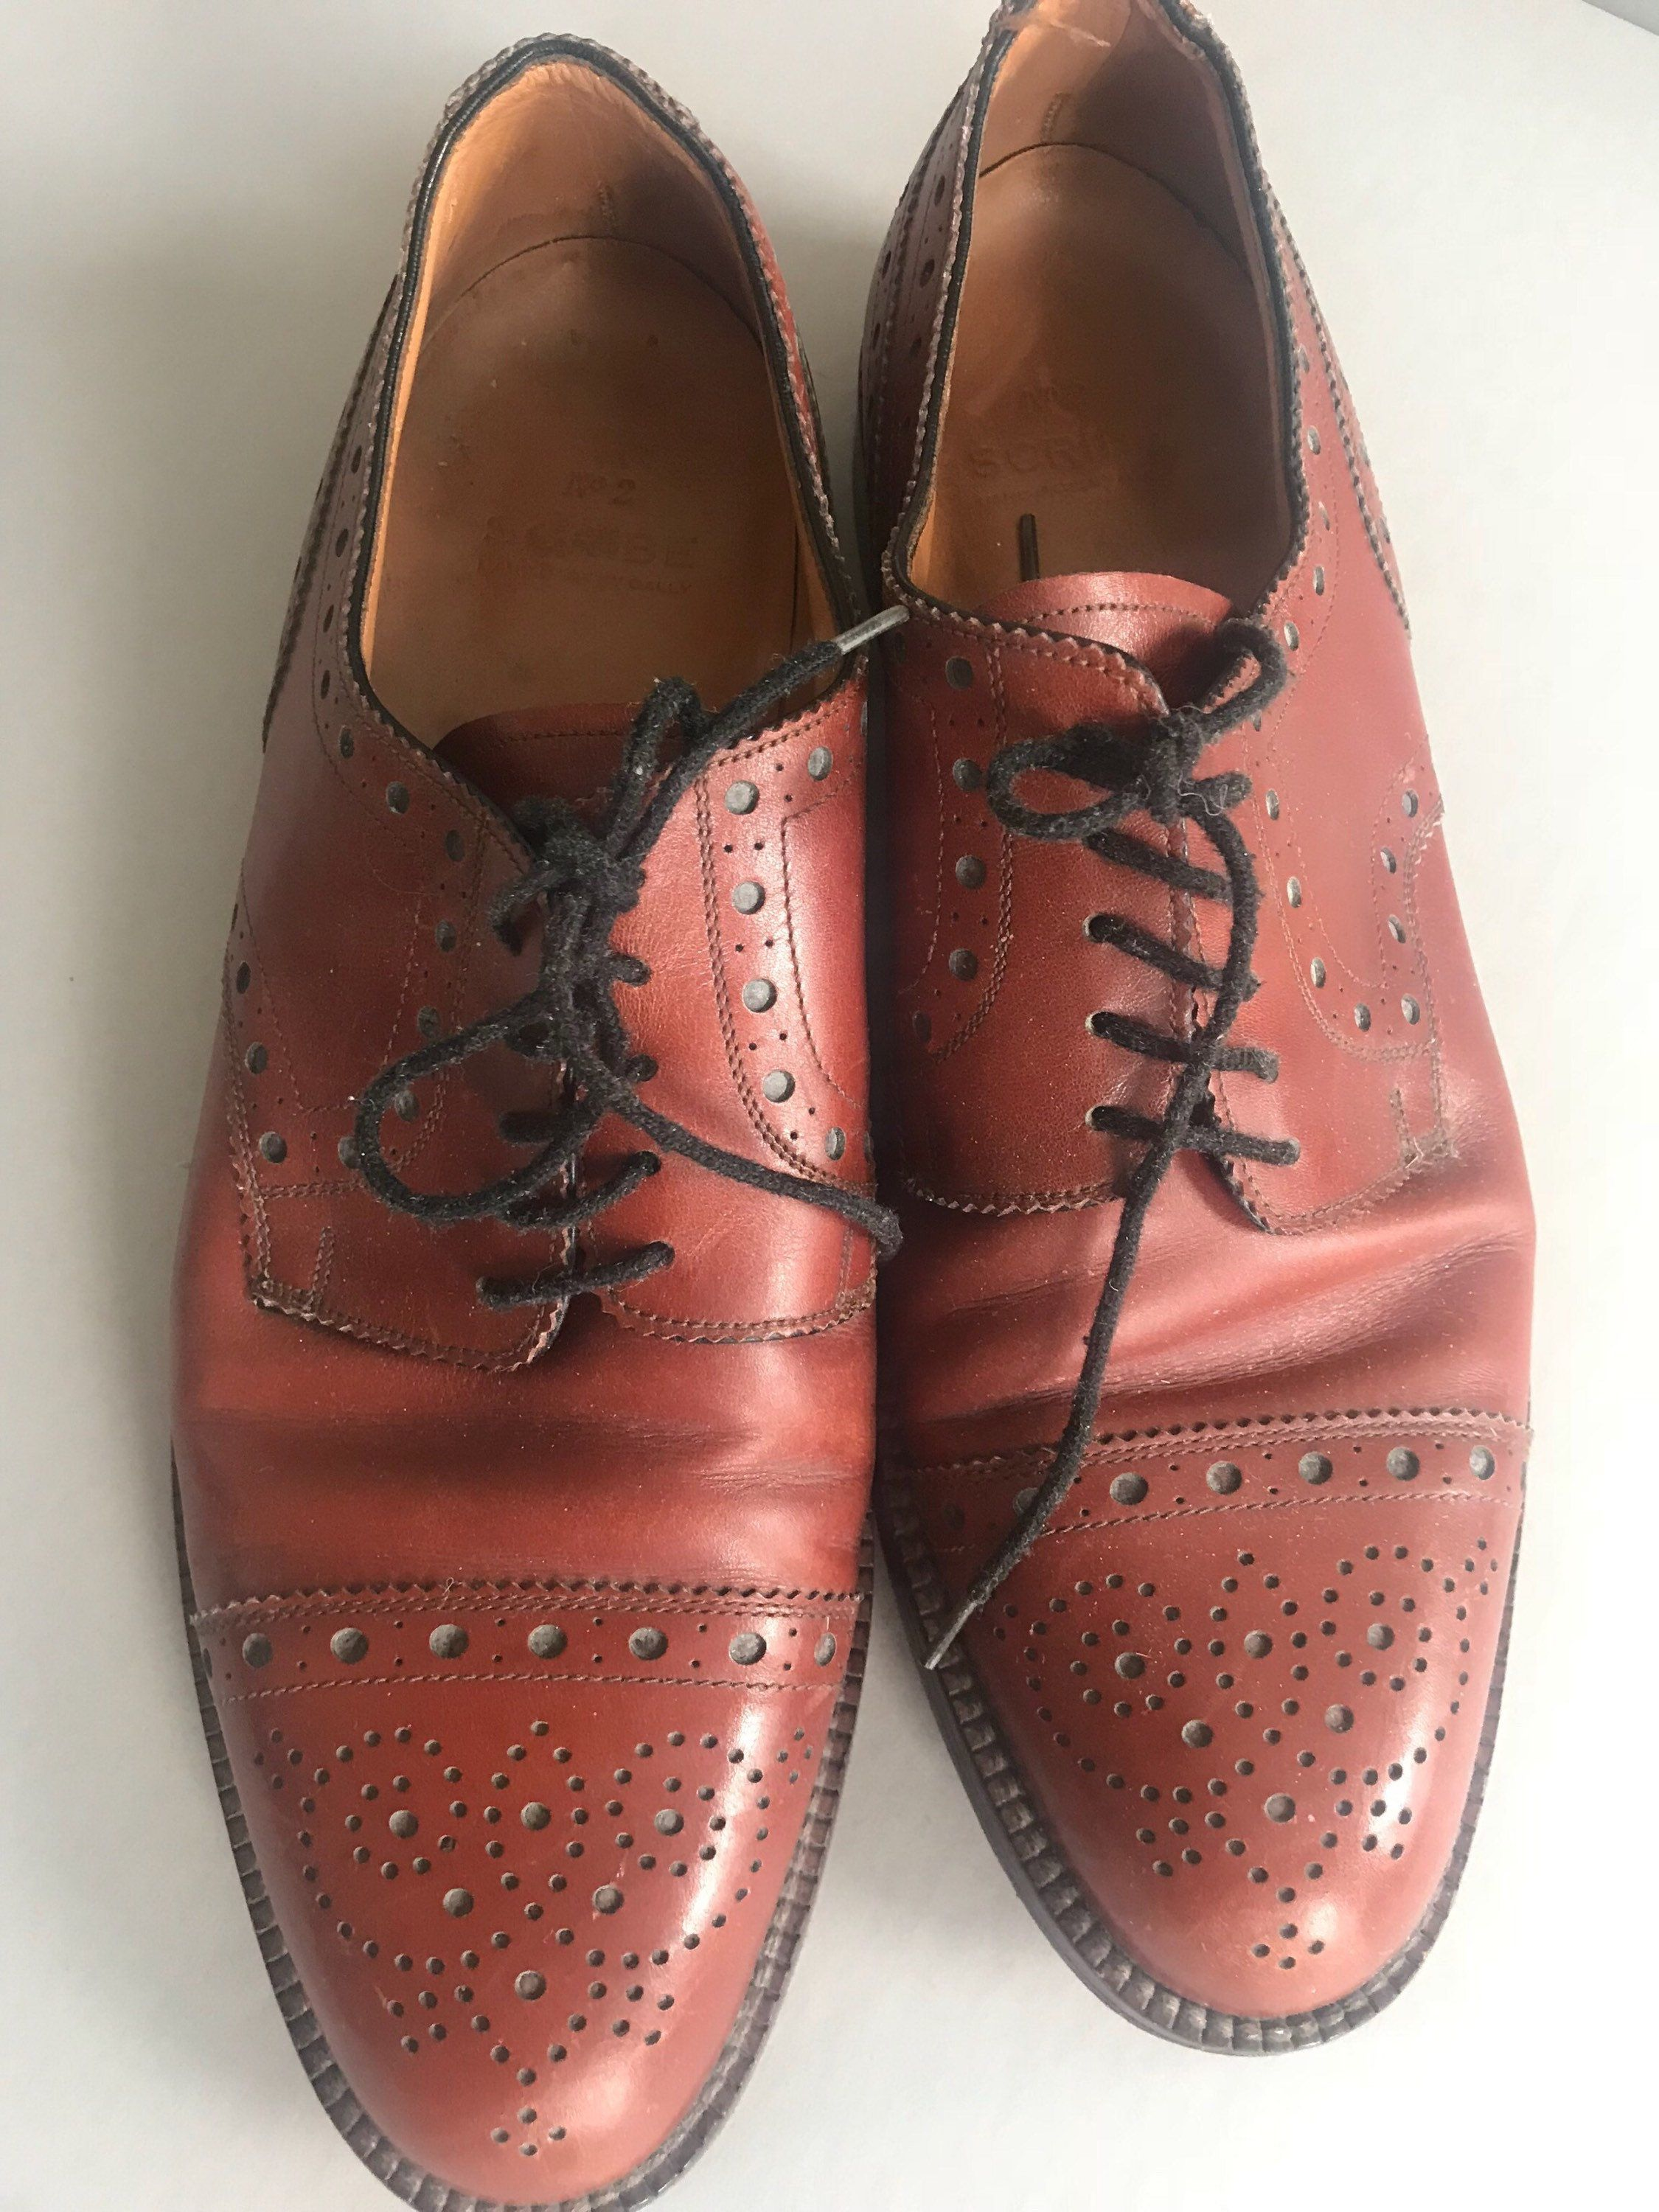 360d1f4c03faa BALLY Oxford Men's Shoes BROGUE Details Brown Reddish Size 8 C Hand ...